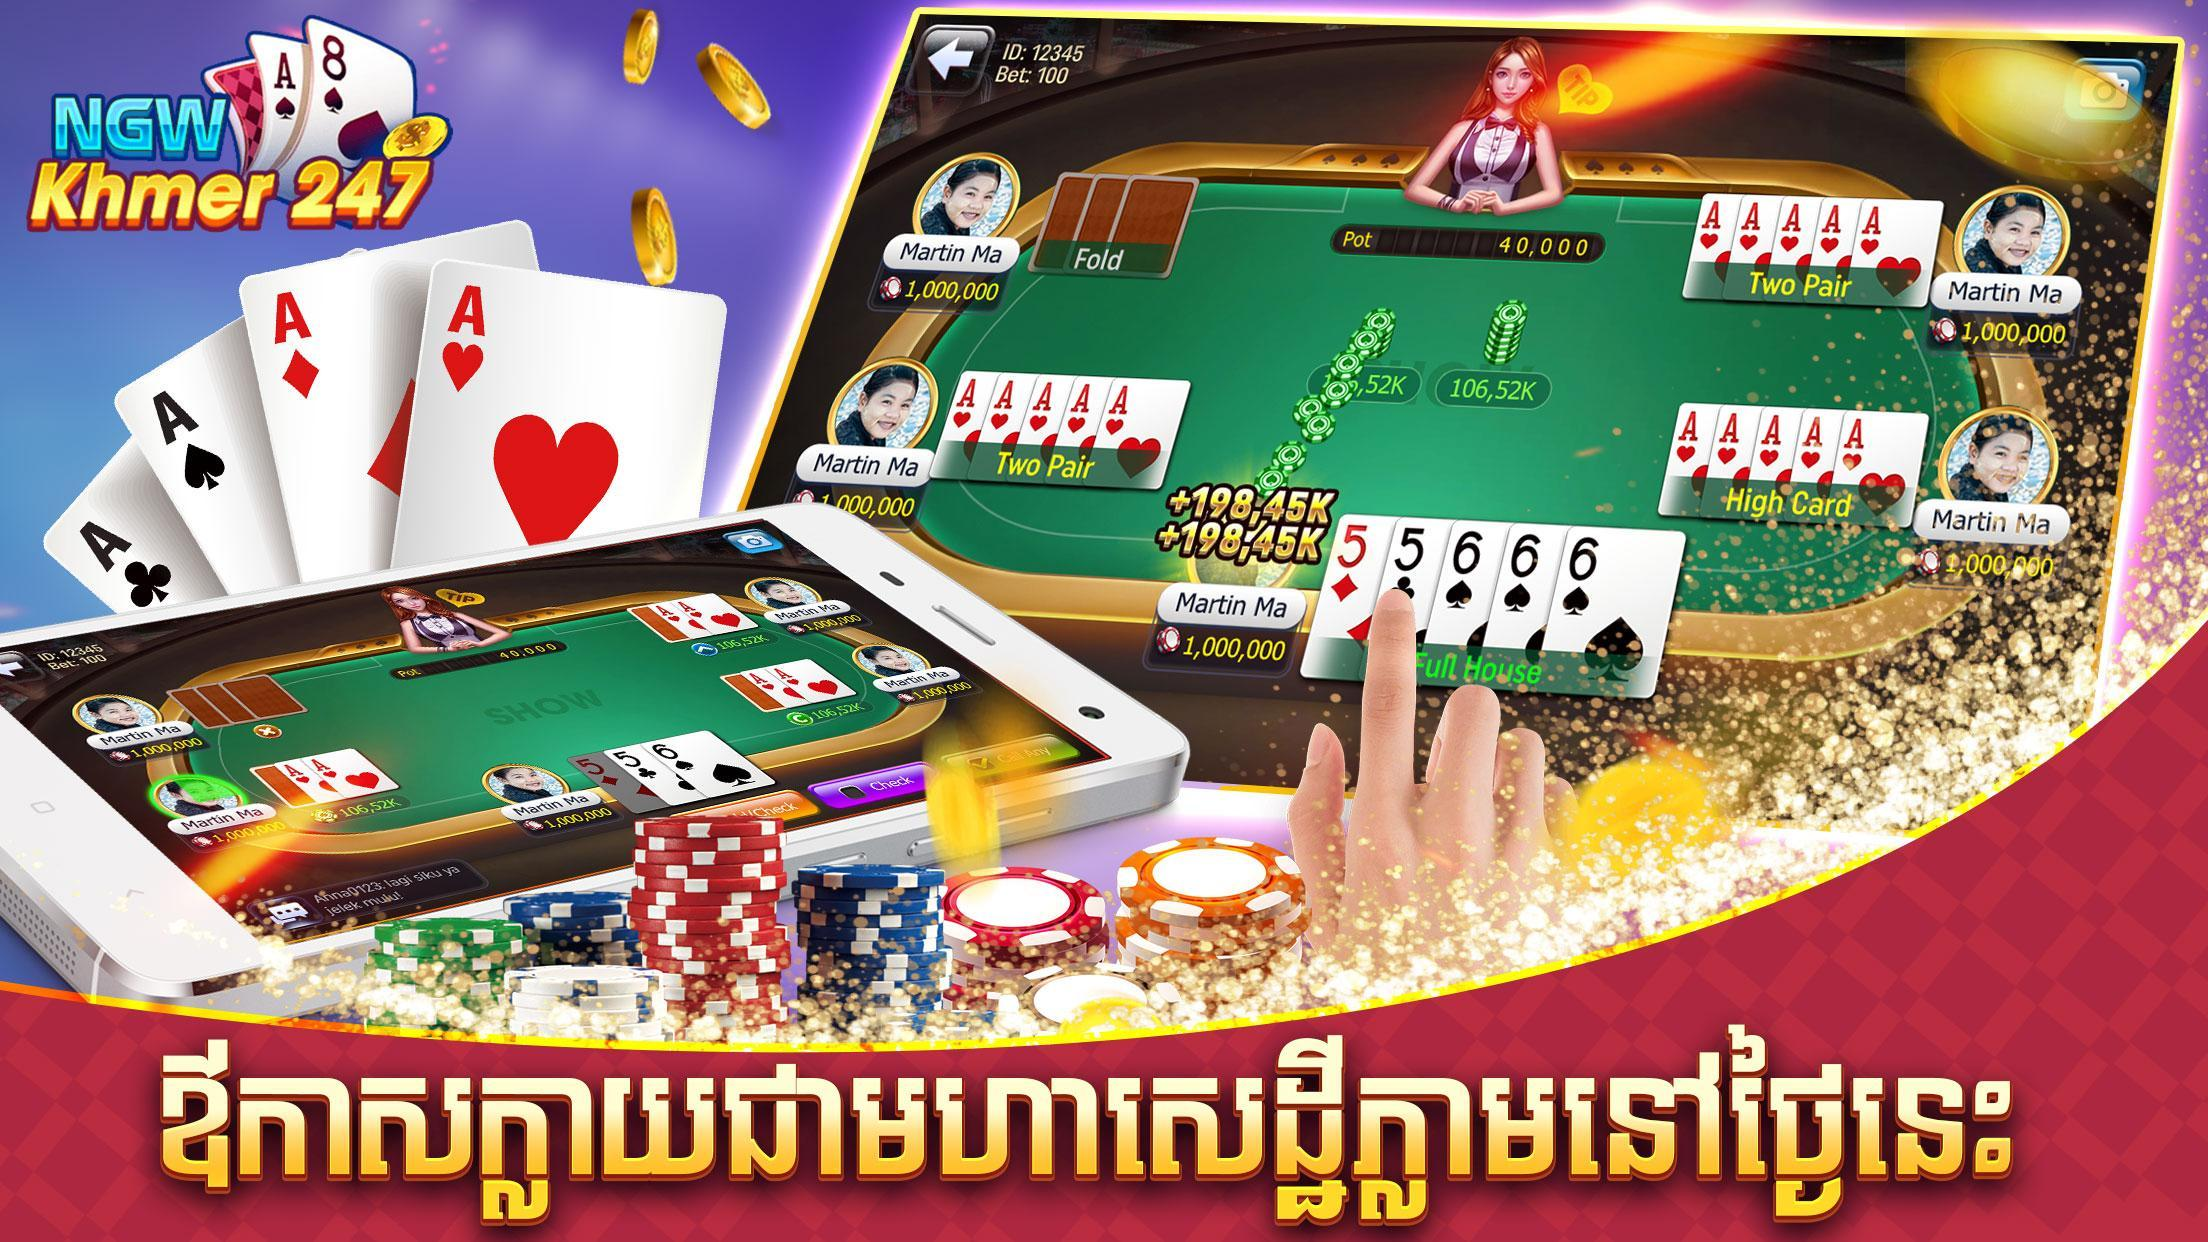 NGW Casino Online 24/7 cho Android - Tải về APK